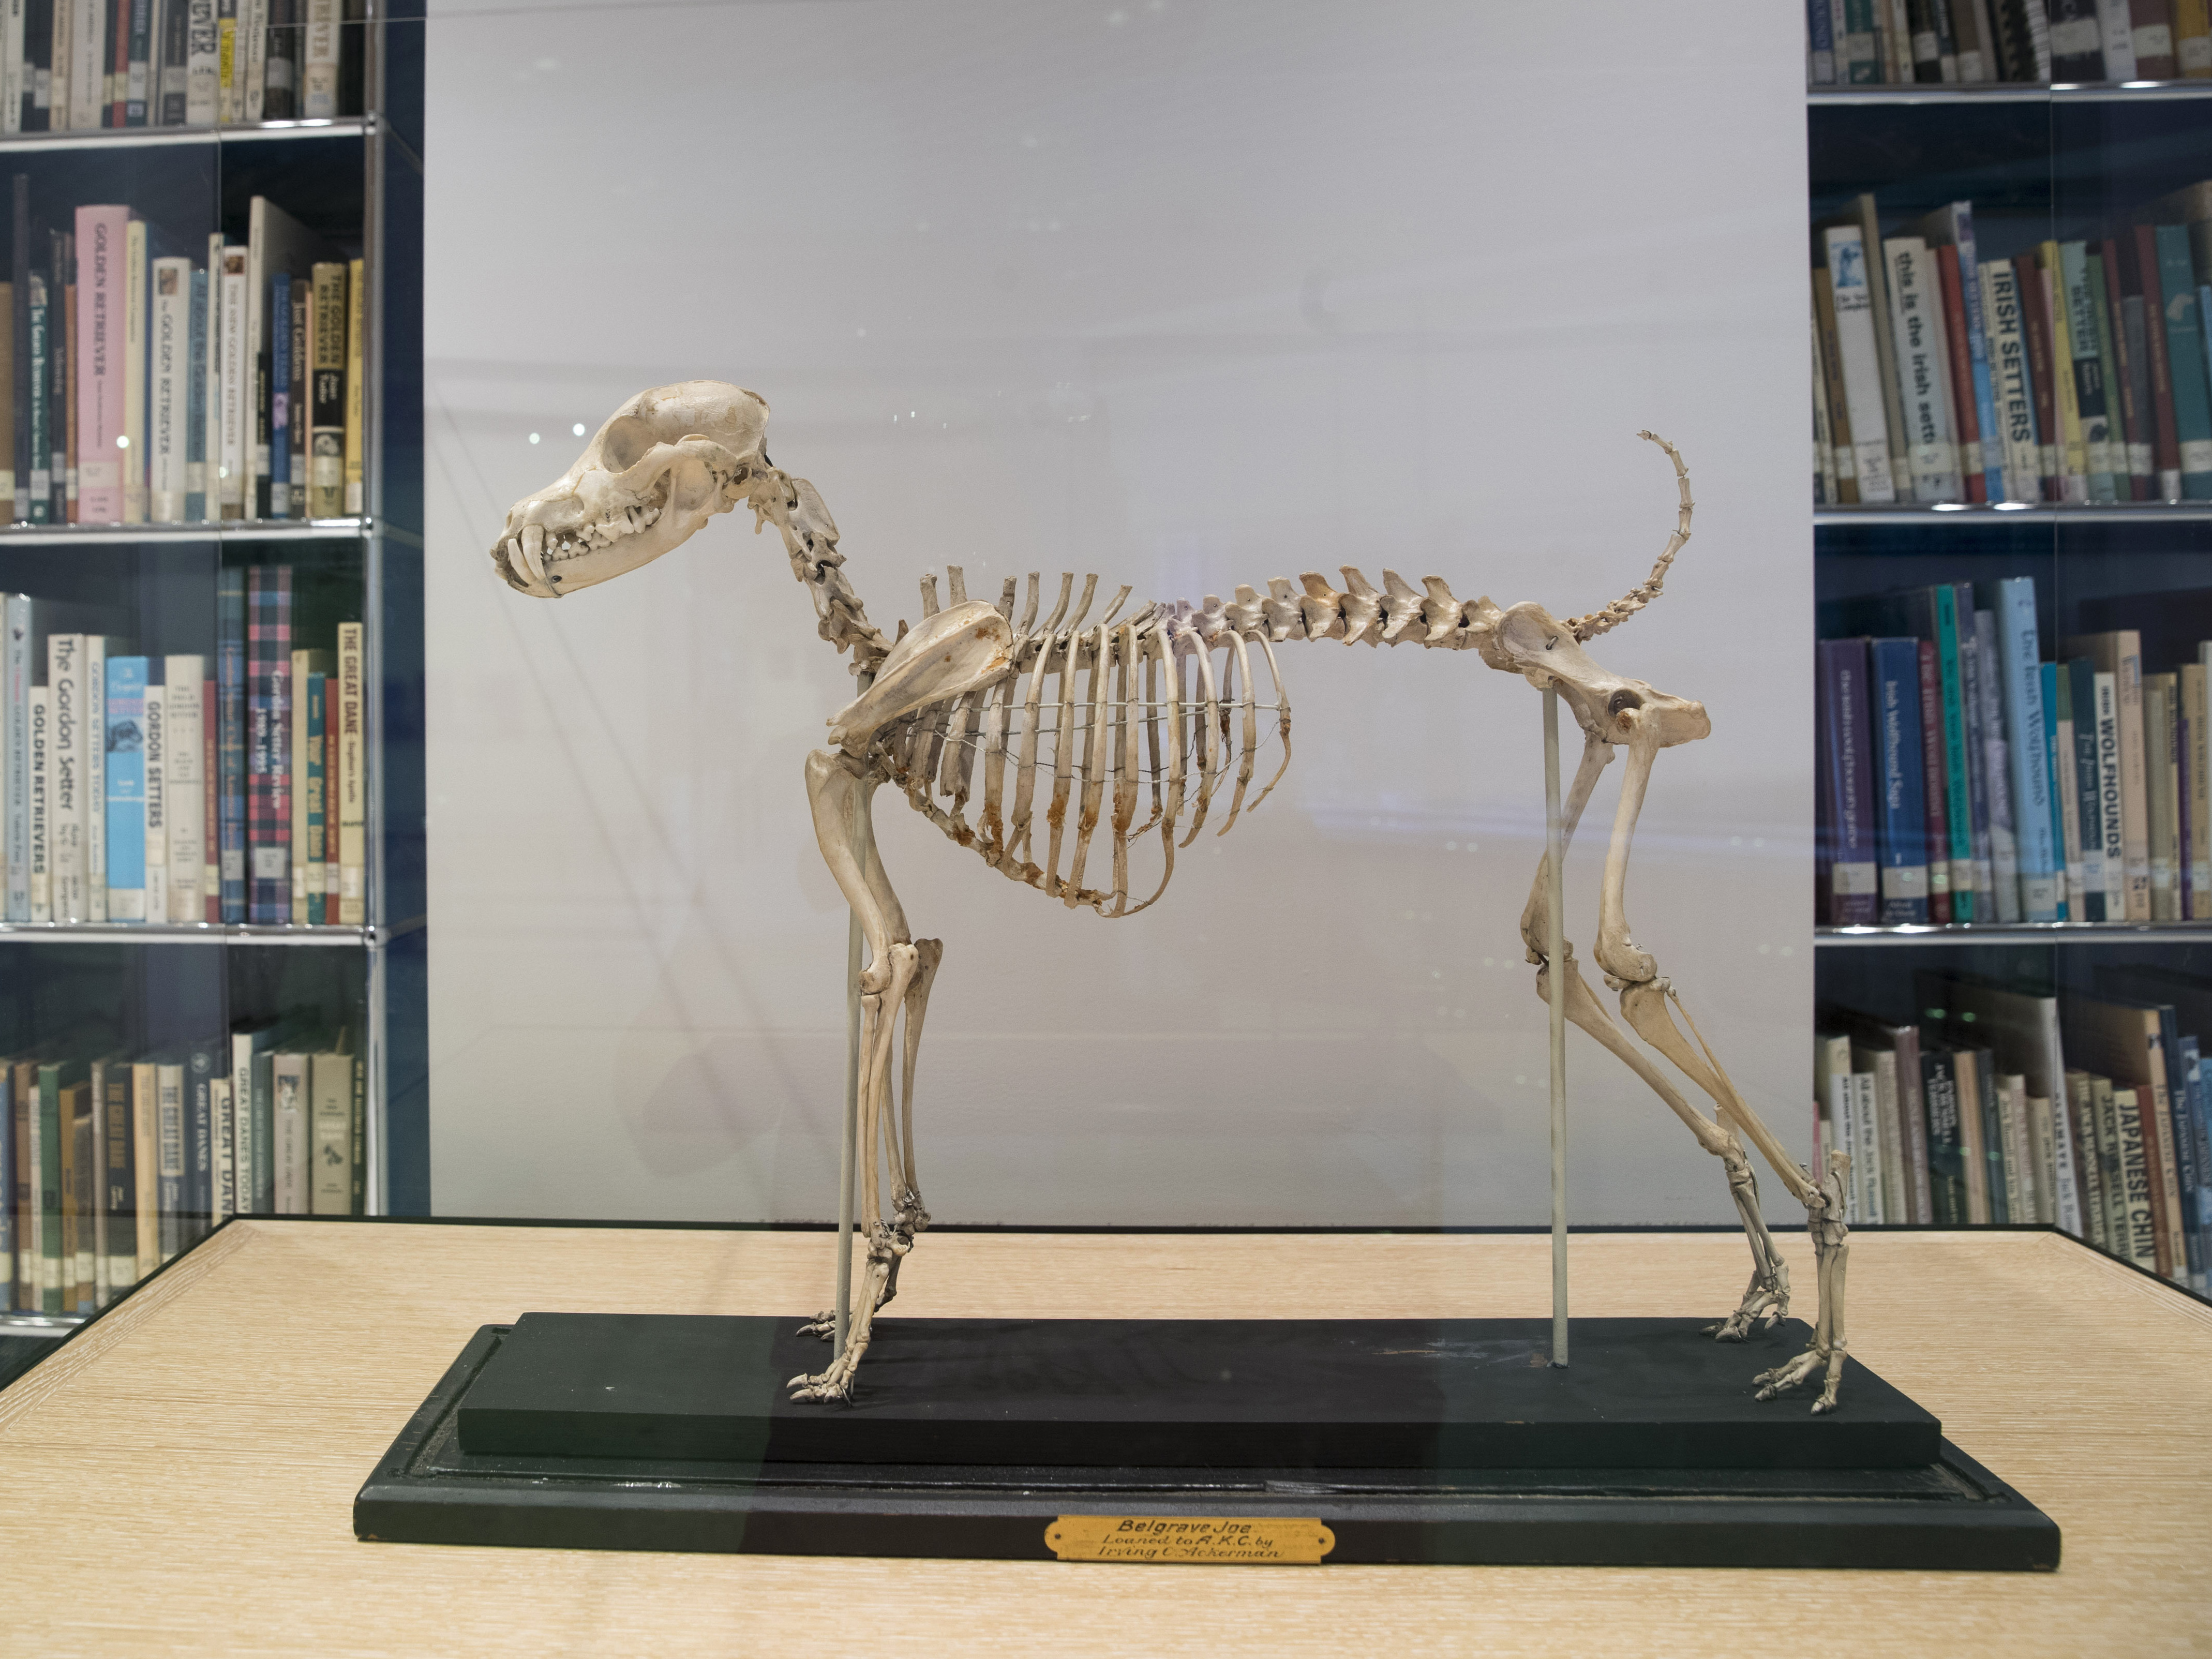 Visitors can see the skeleton of Belgrave Joe, the foundation sire of both fox terrier wire and smooth bloodlines, at the Museum of the Dog.